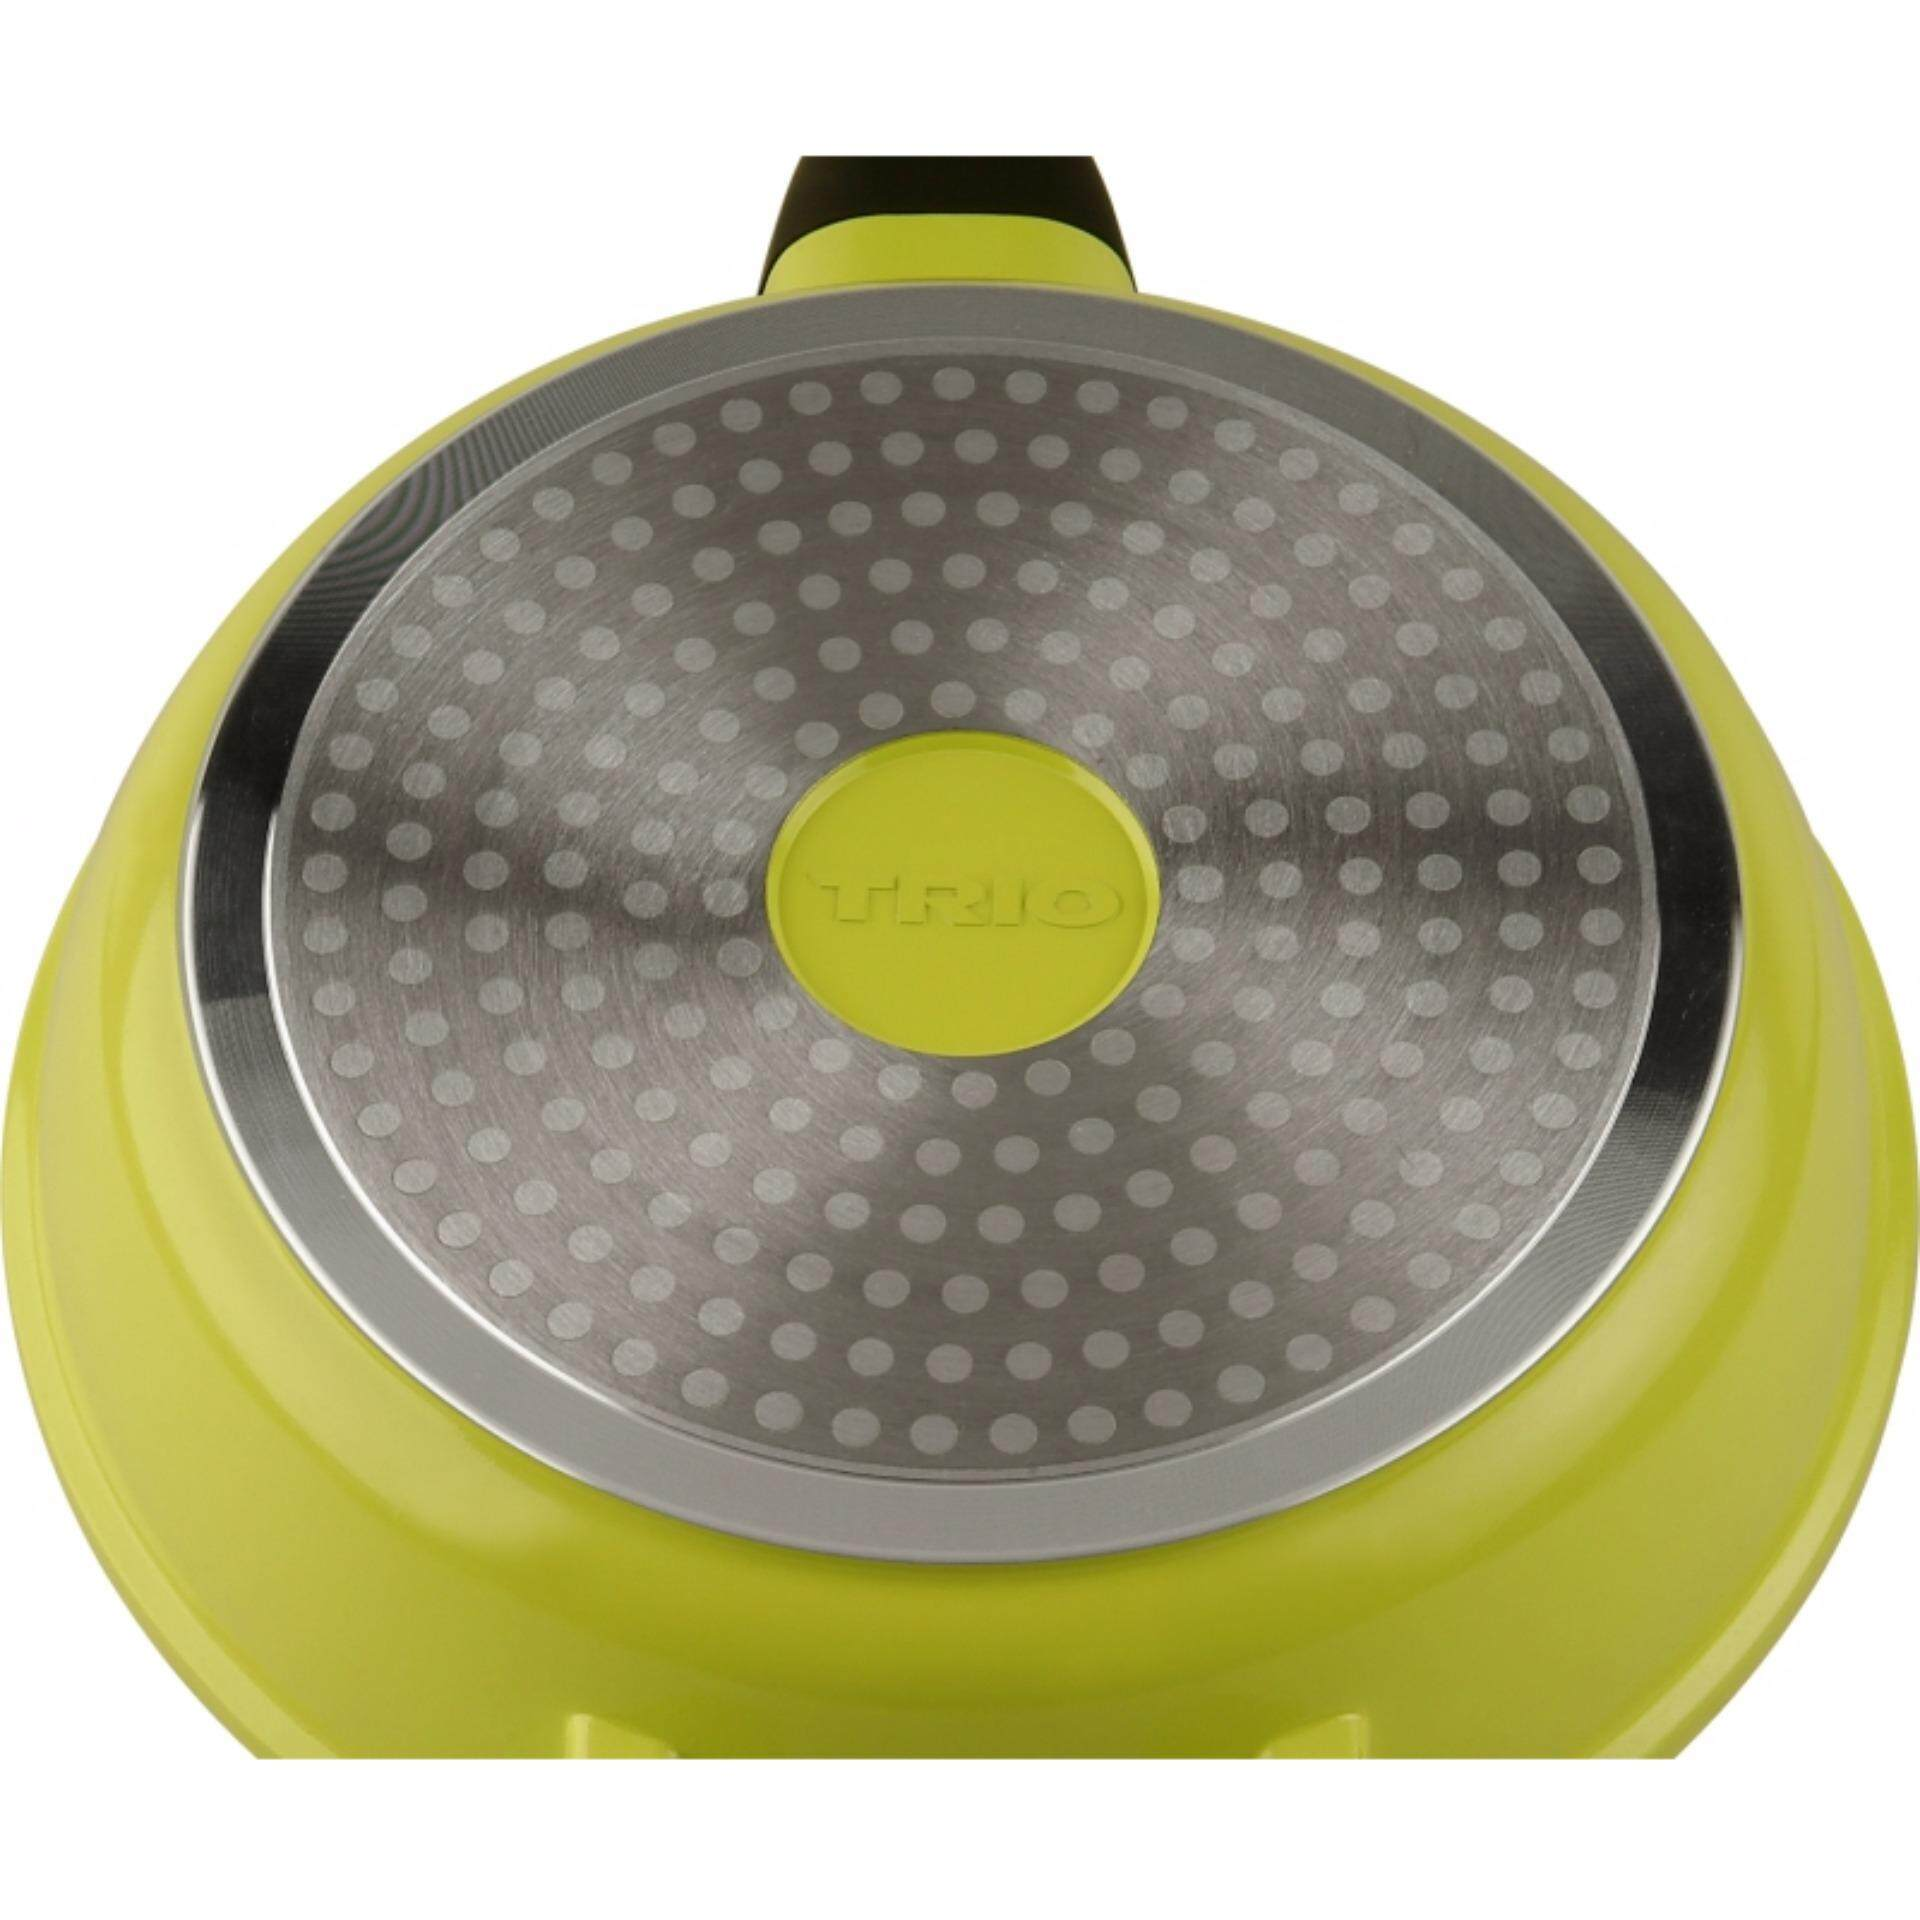 Trio TFP-124 Frying Cooking Pan 2 Layer Ceramic Coating Non-stick (Yellow)